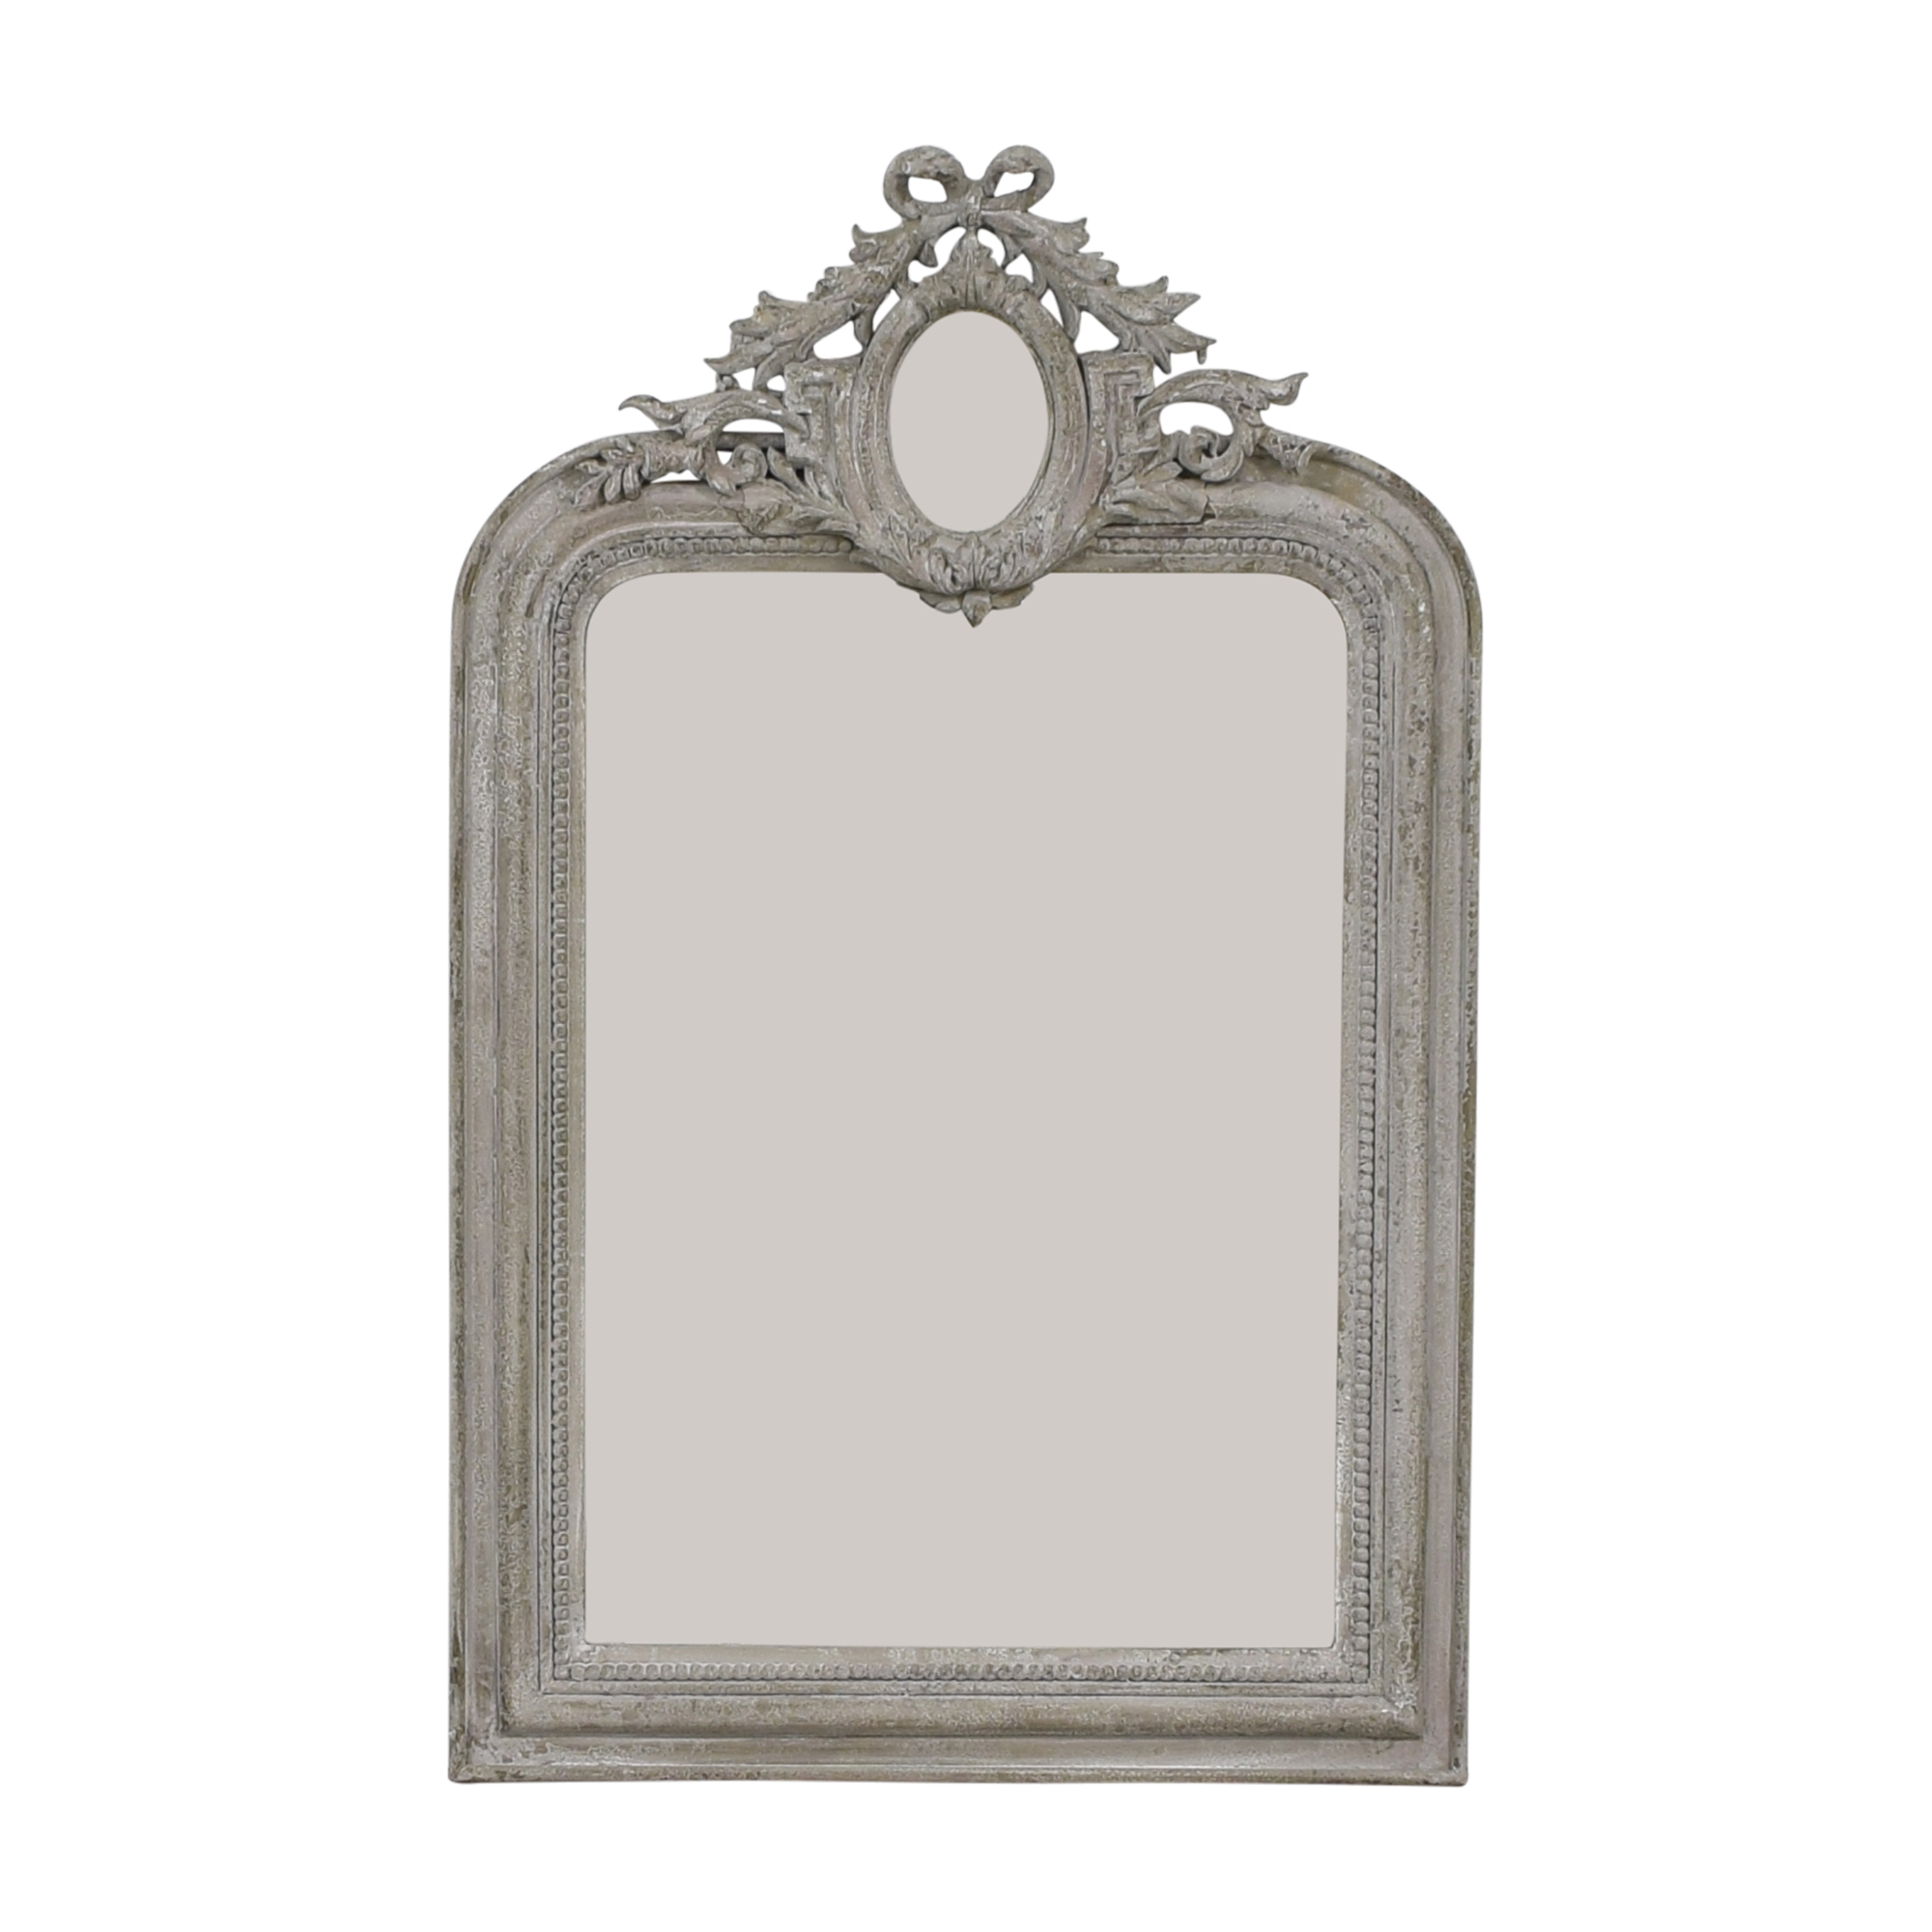 Horchow Carved Vertical Wall Mirror / Mirrors